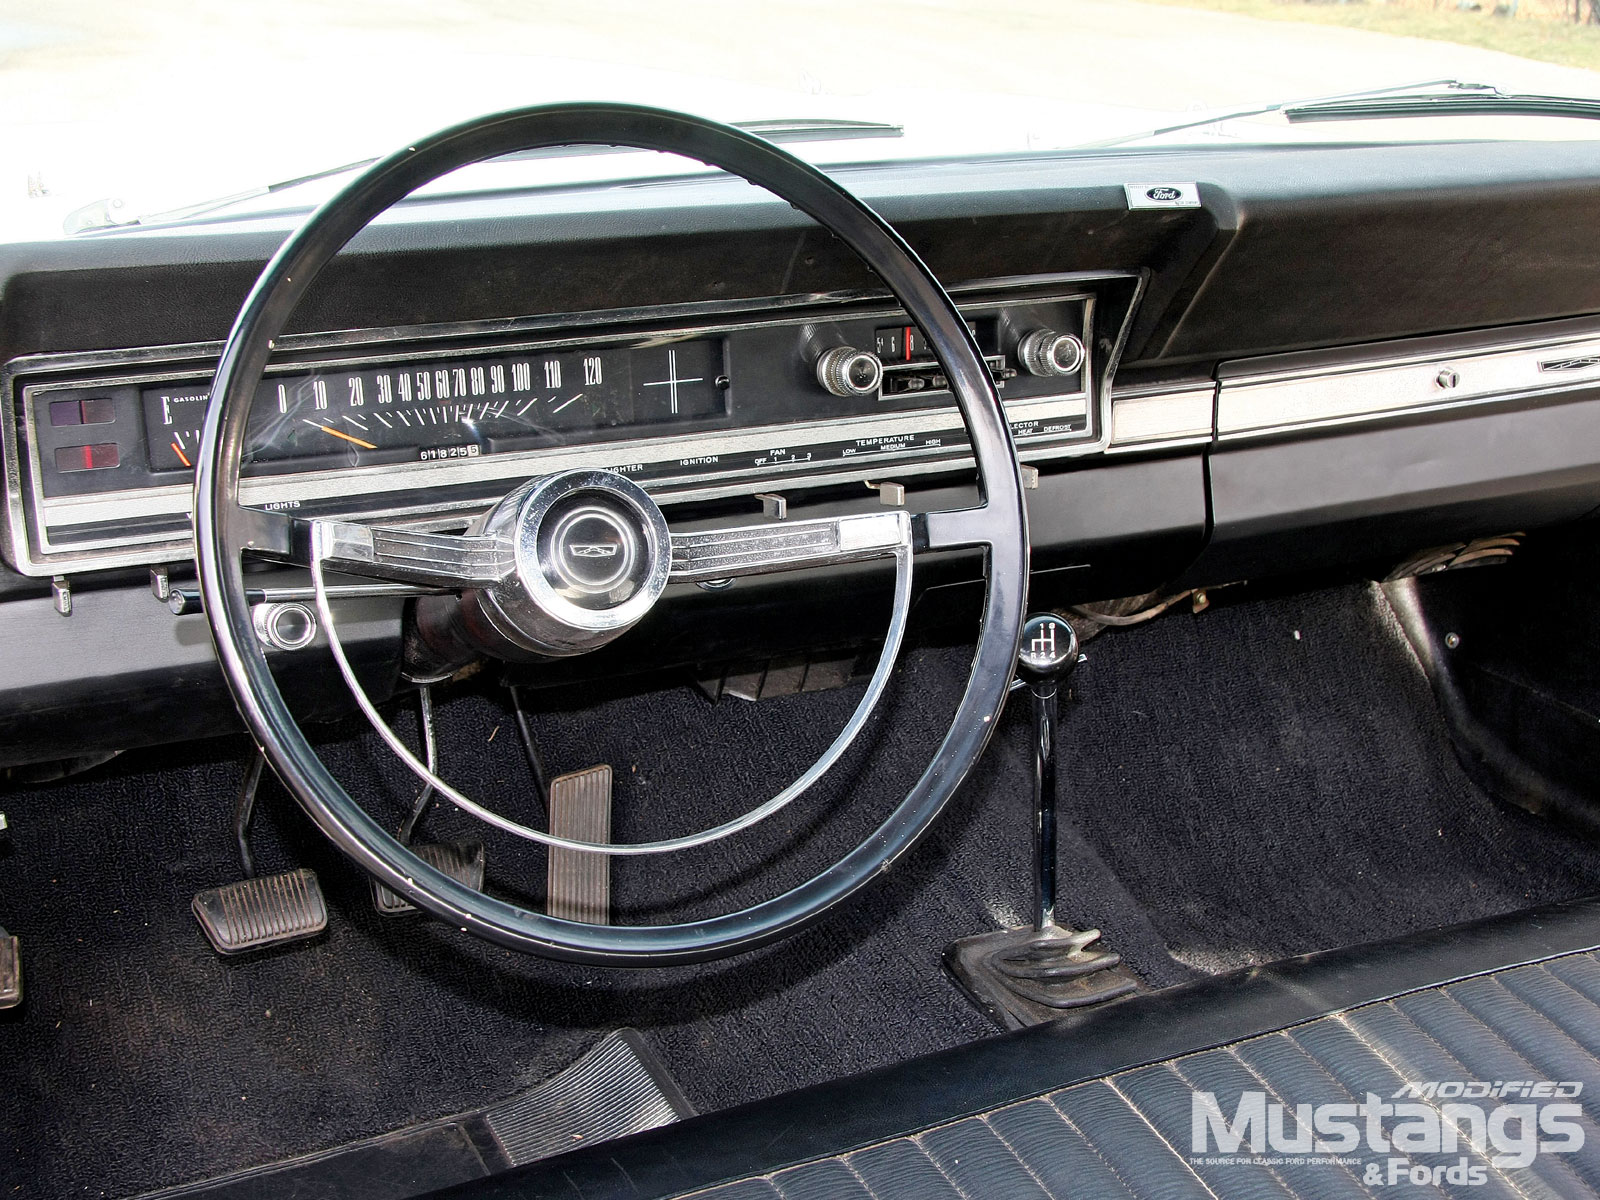 1966 Fairlane Interior Steering Wheel